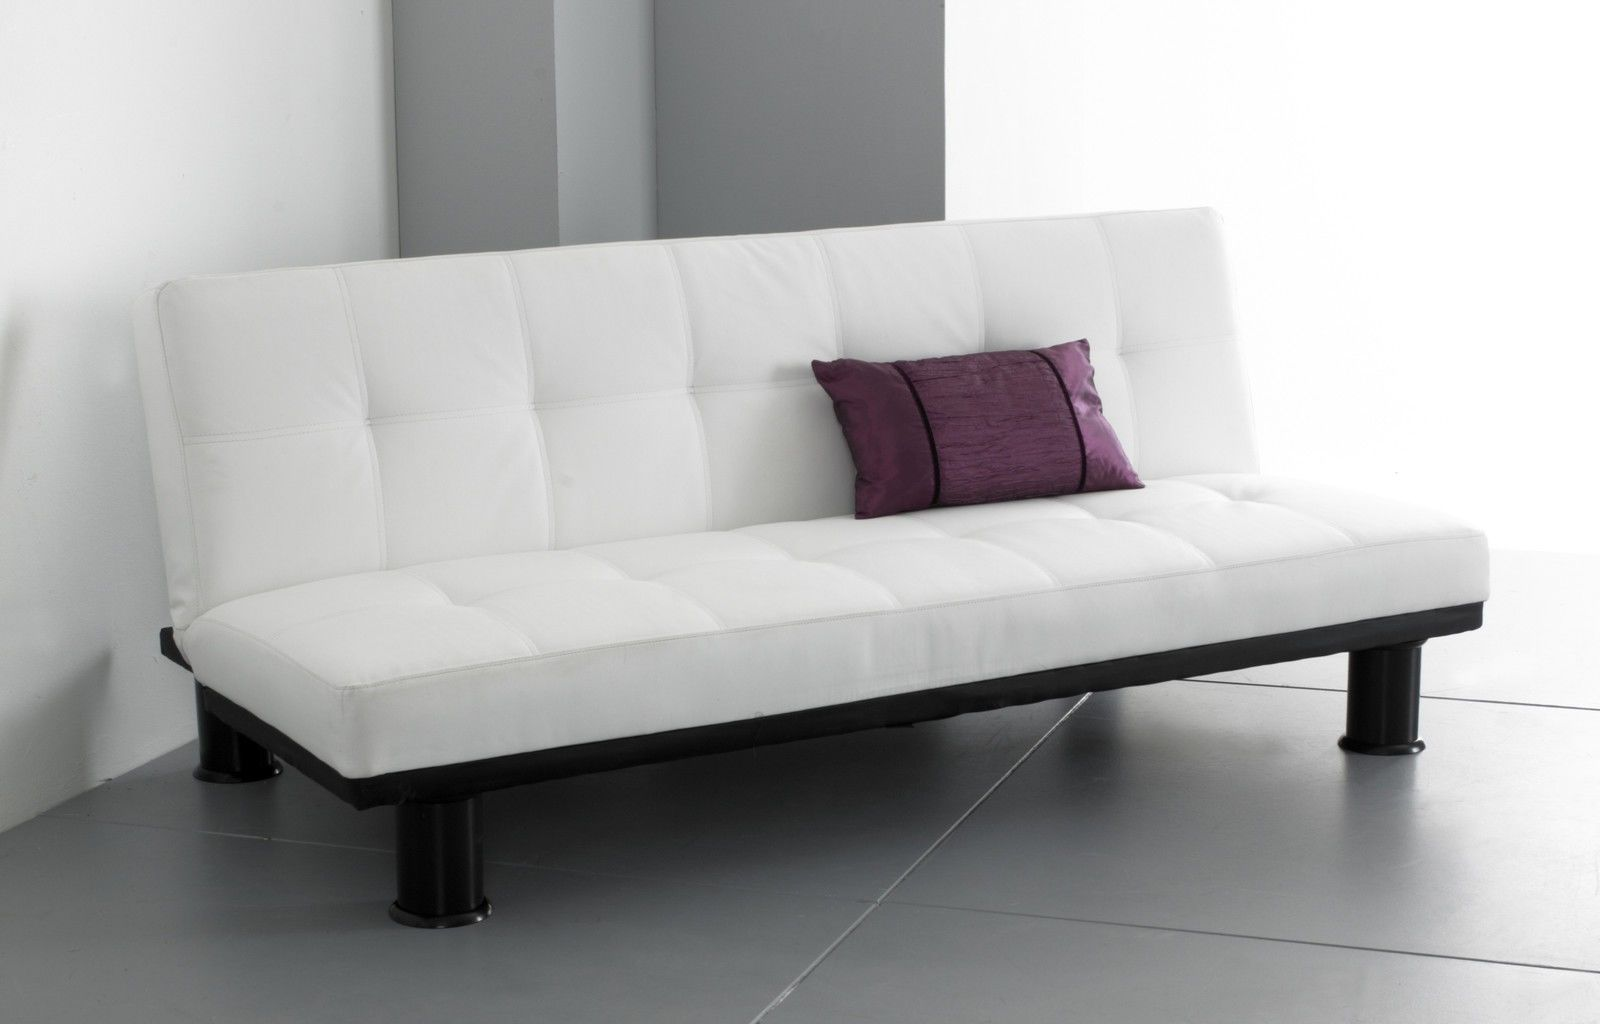 stylish bed sofa couch gallery-Fresh Bed sofa Couch Layout